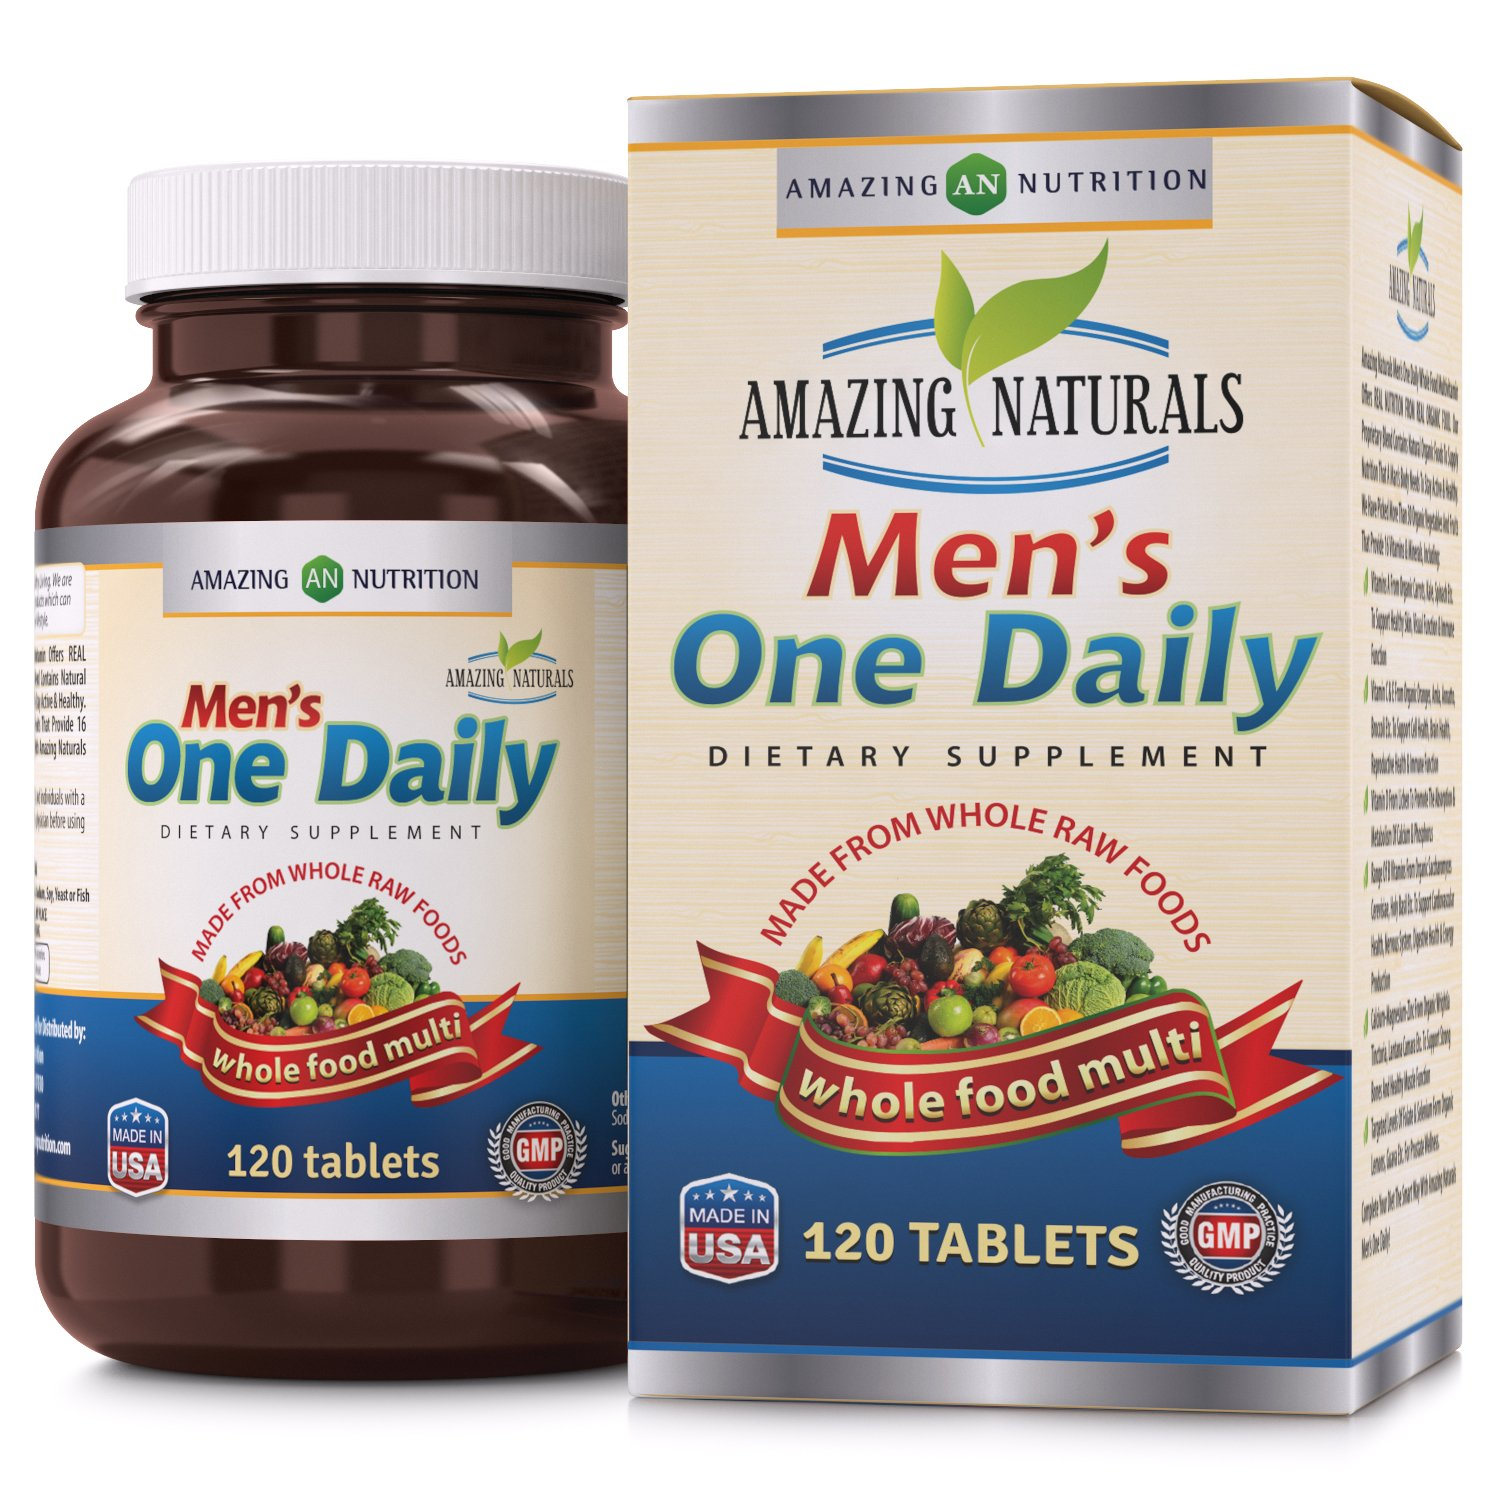 Amazing Naturals MEN S ONE DAILY Multivitamin * Best Raw Whole Food Multivitamins For Men * 120 Tablets Per Bottle. Packed With The Goodness Of Over 30 Organic Vegetables And Fruits